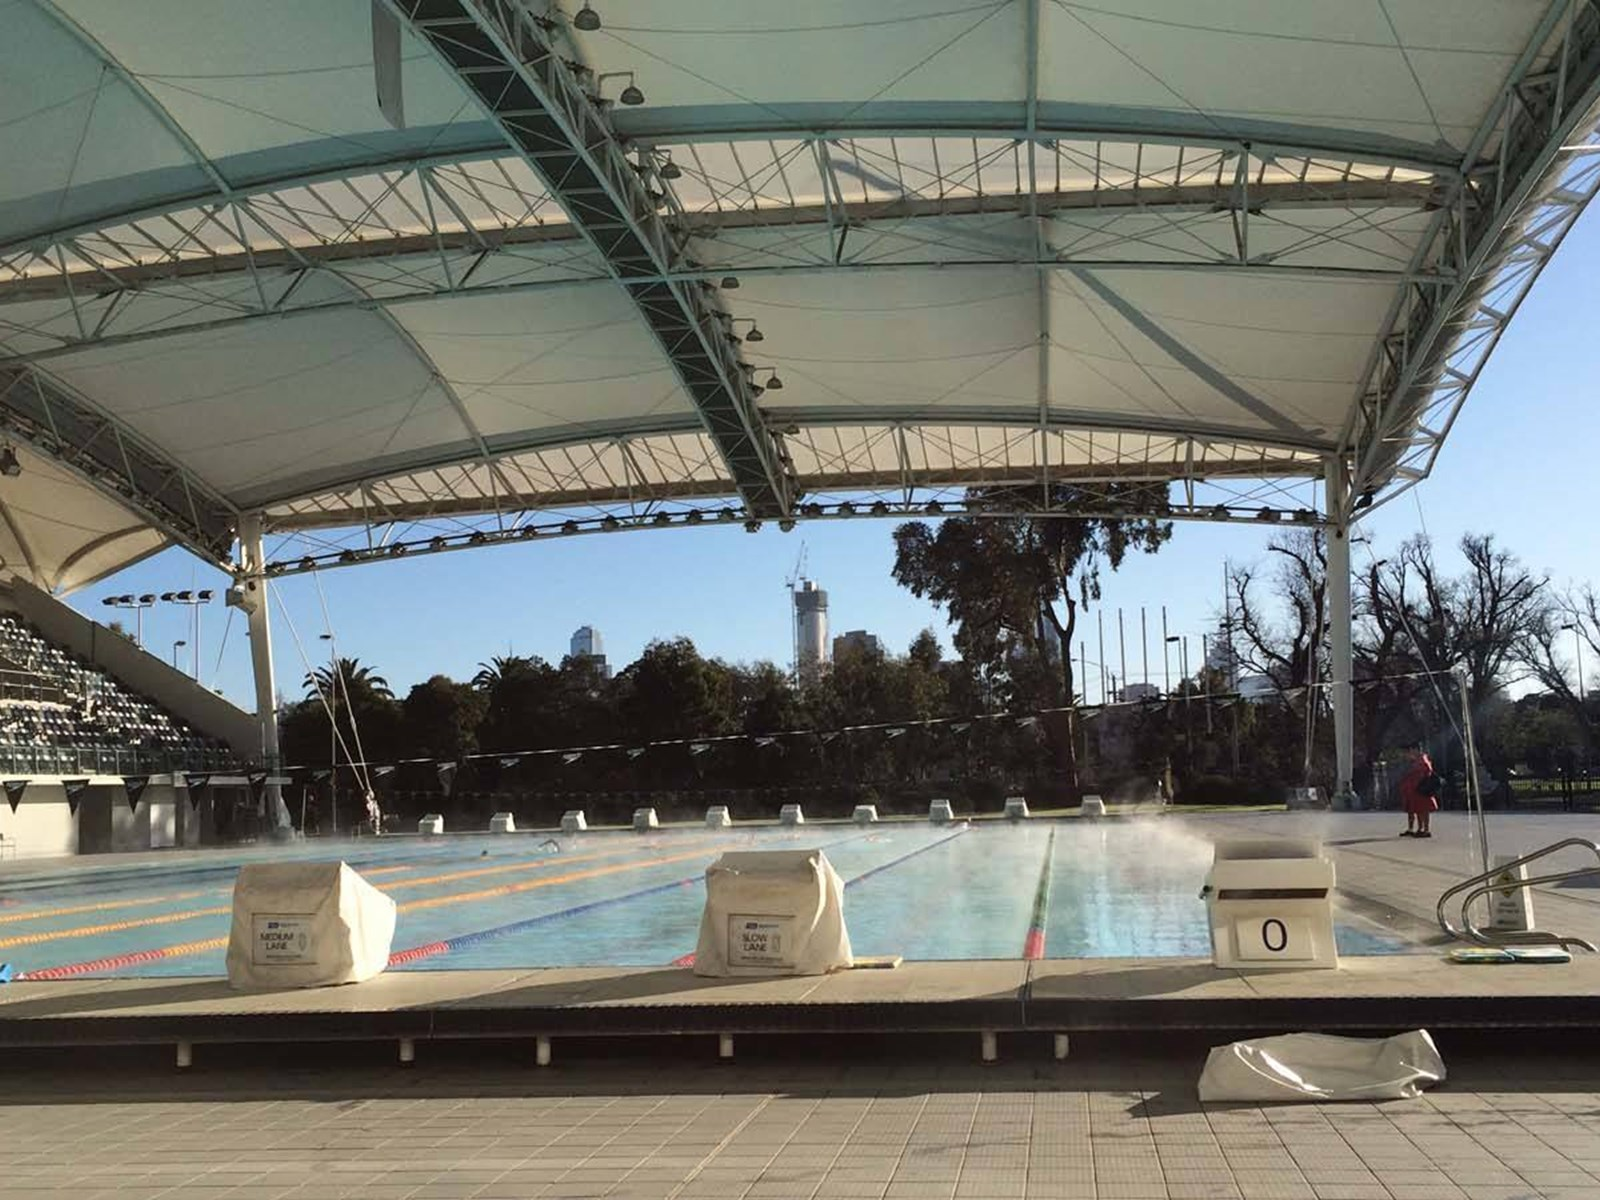 Melbourne Sports and Aquatic Centre, Albert Park, Victoria, Australia